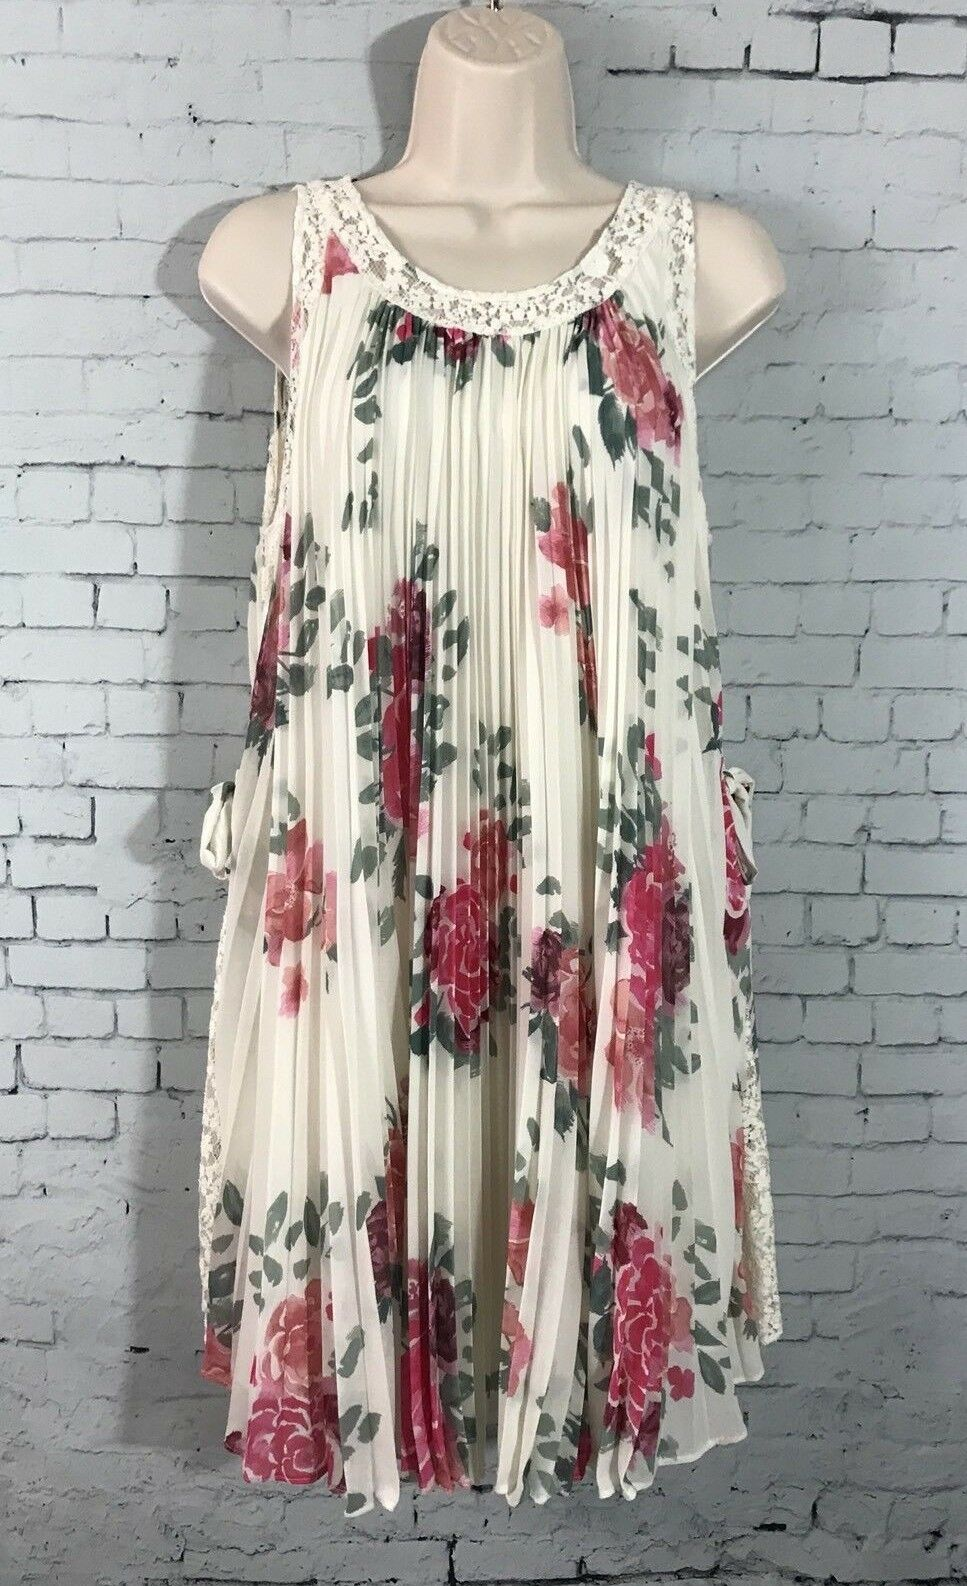 Free People Pleated Tent Dress Small Lace Inset Side Tie Rosa Floral Weiß NWOT